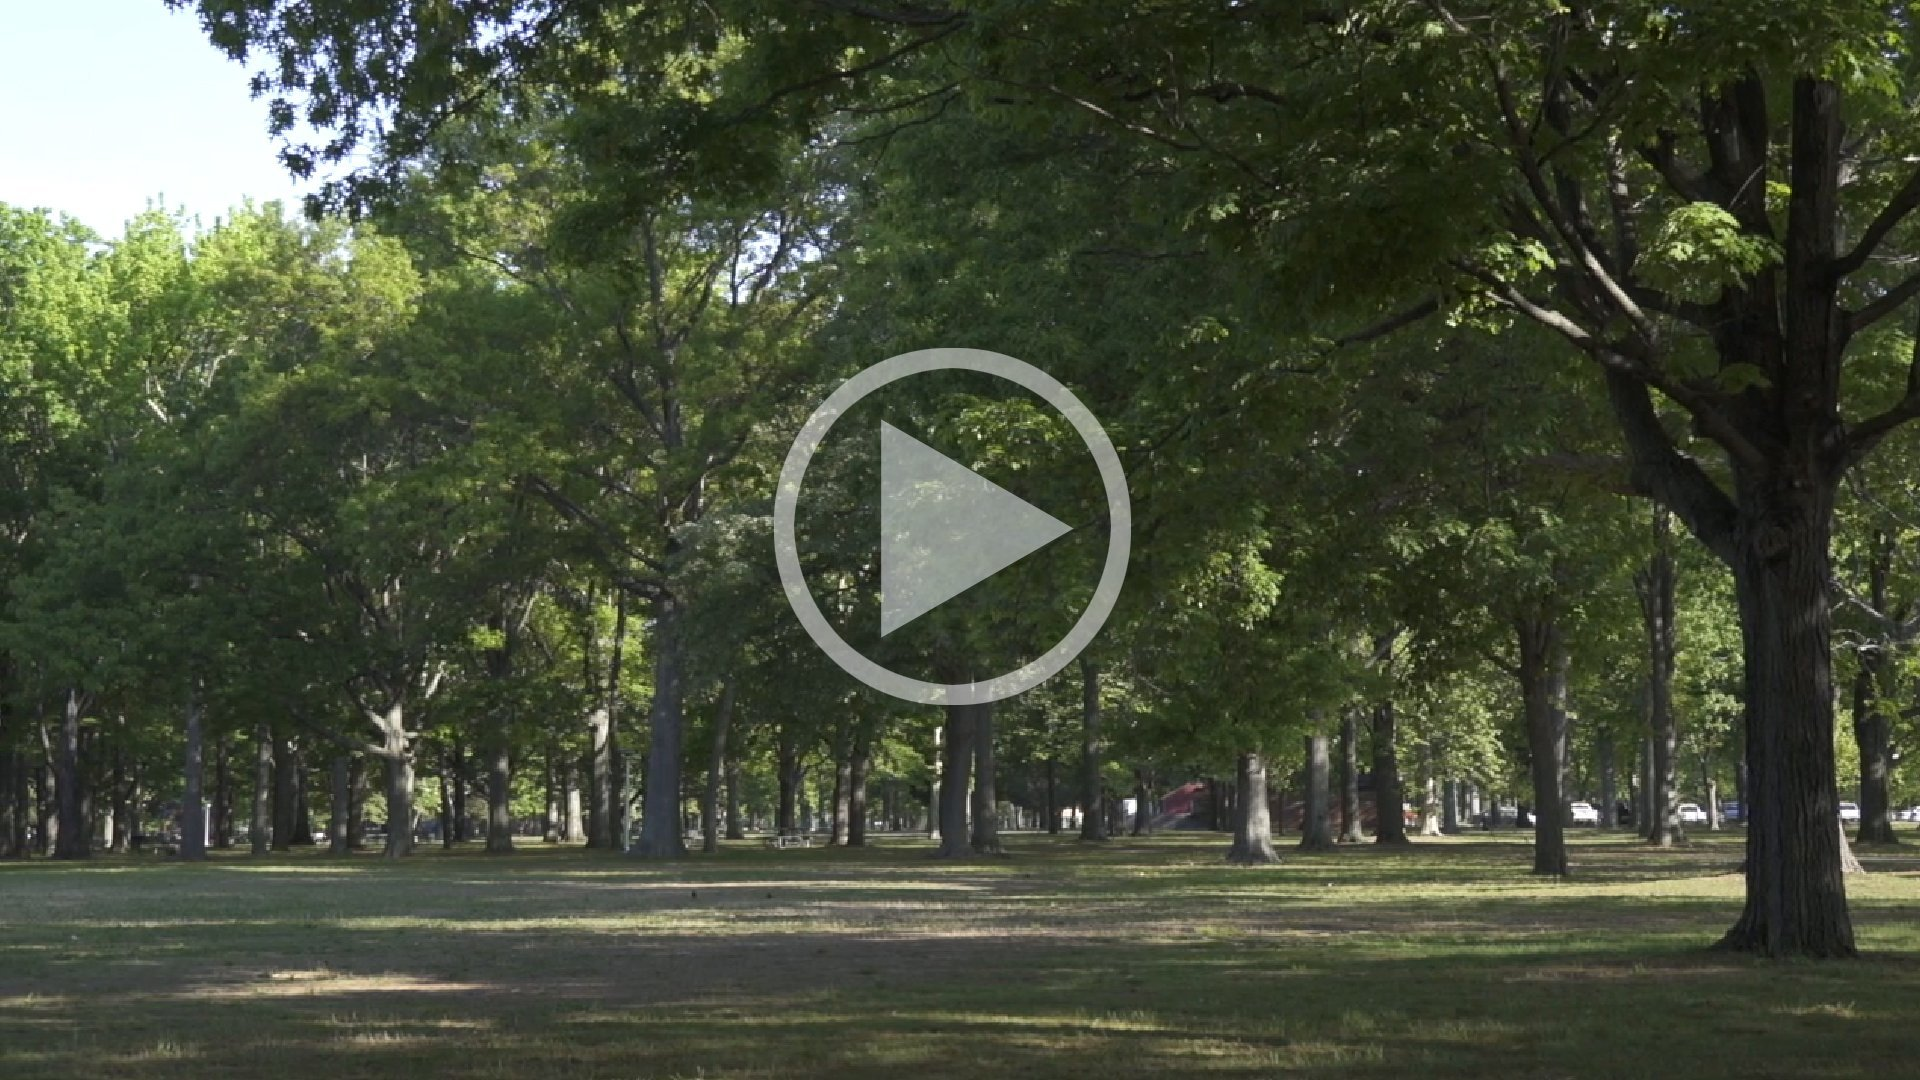 EXPLORE WILLISTON PARK